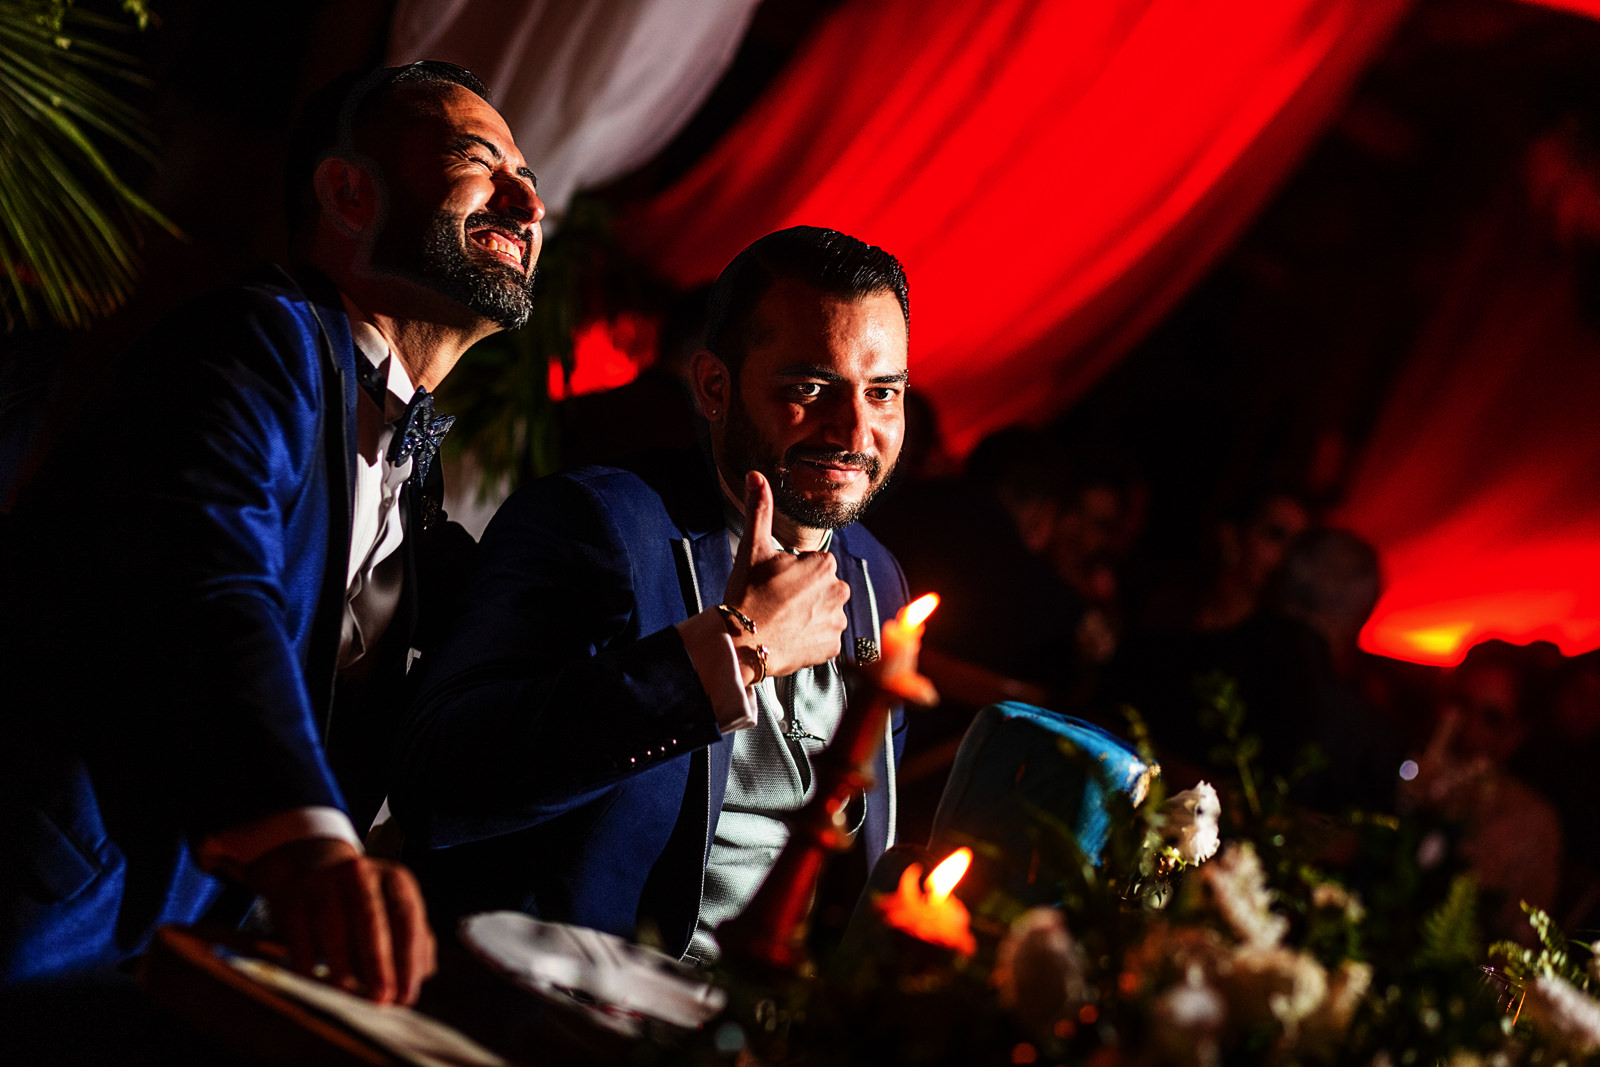 Gay couple on their dinning table during the speeches.